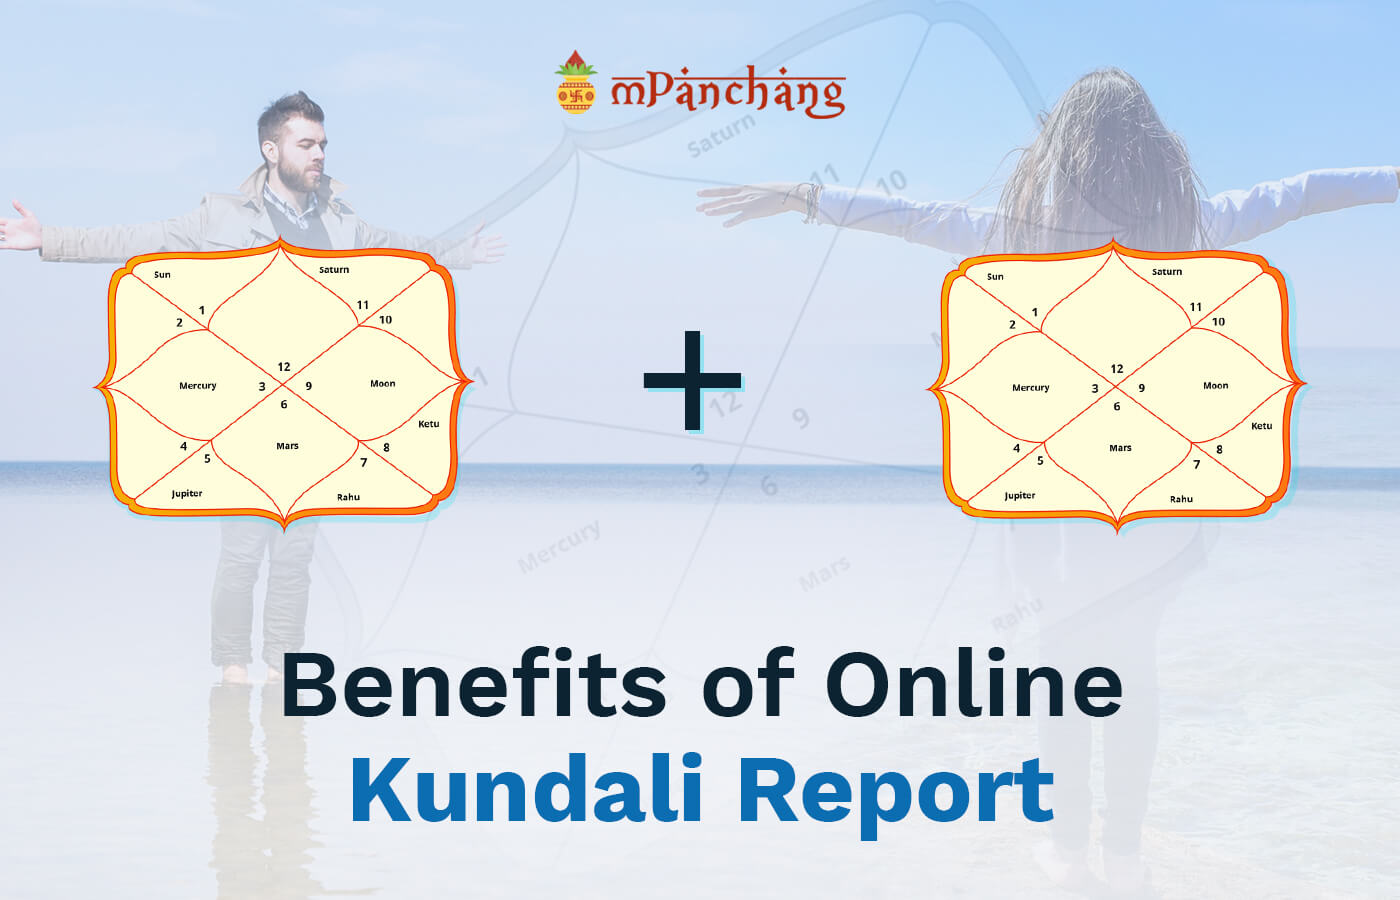 Benefits of Online Kundali Report